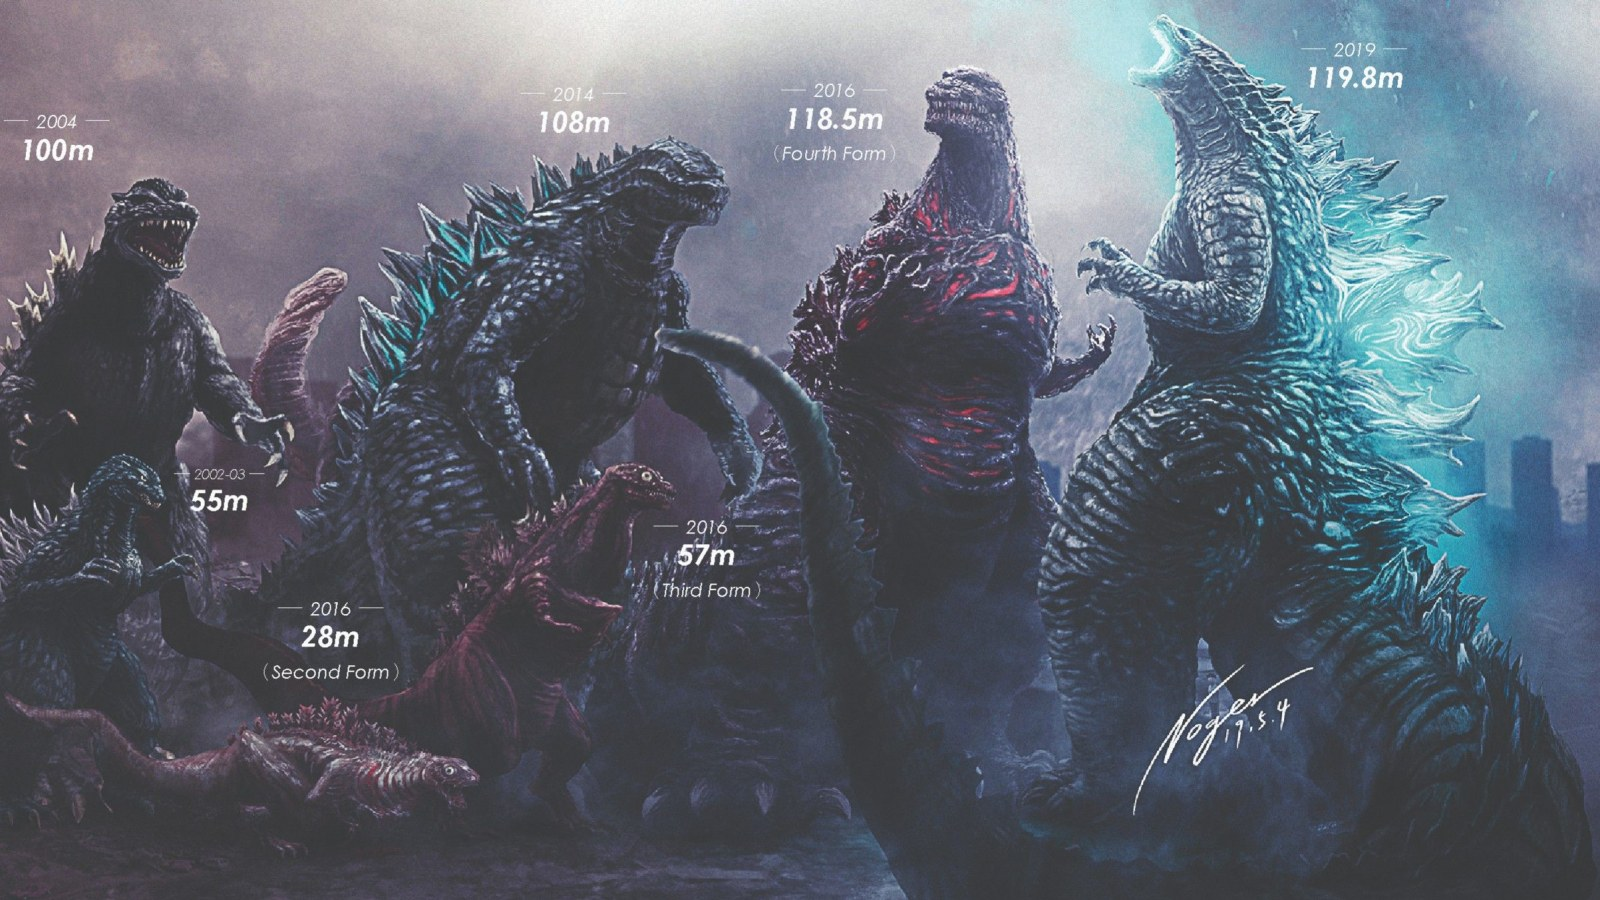 Godzilla Size Chart Shows How Much The King Of Monsters Has